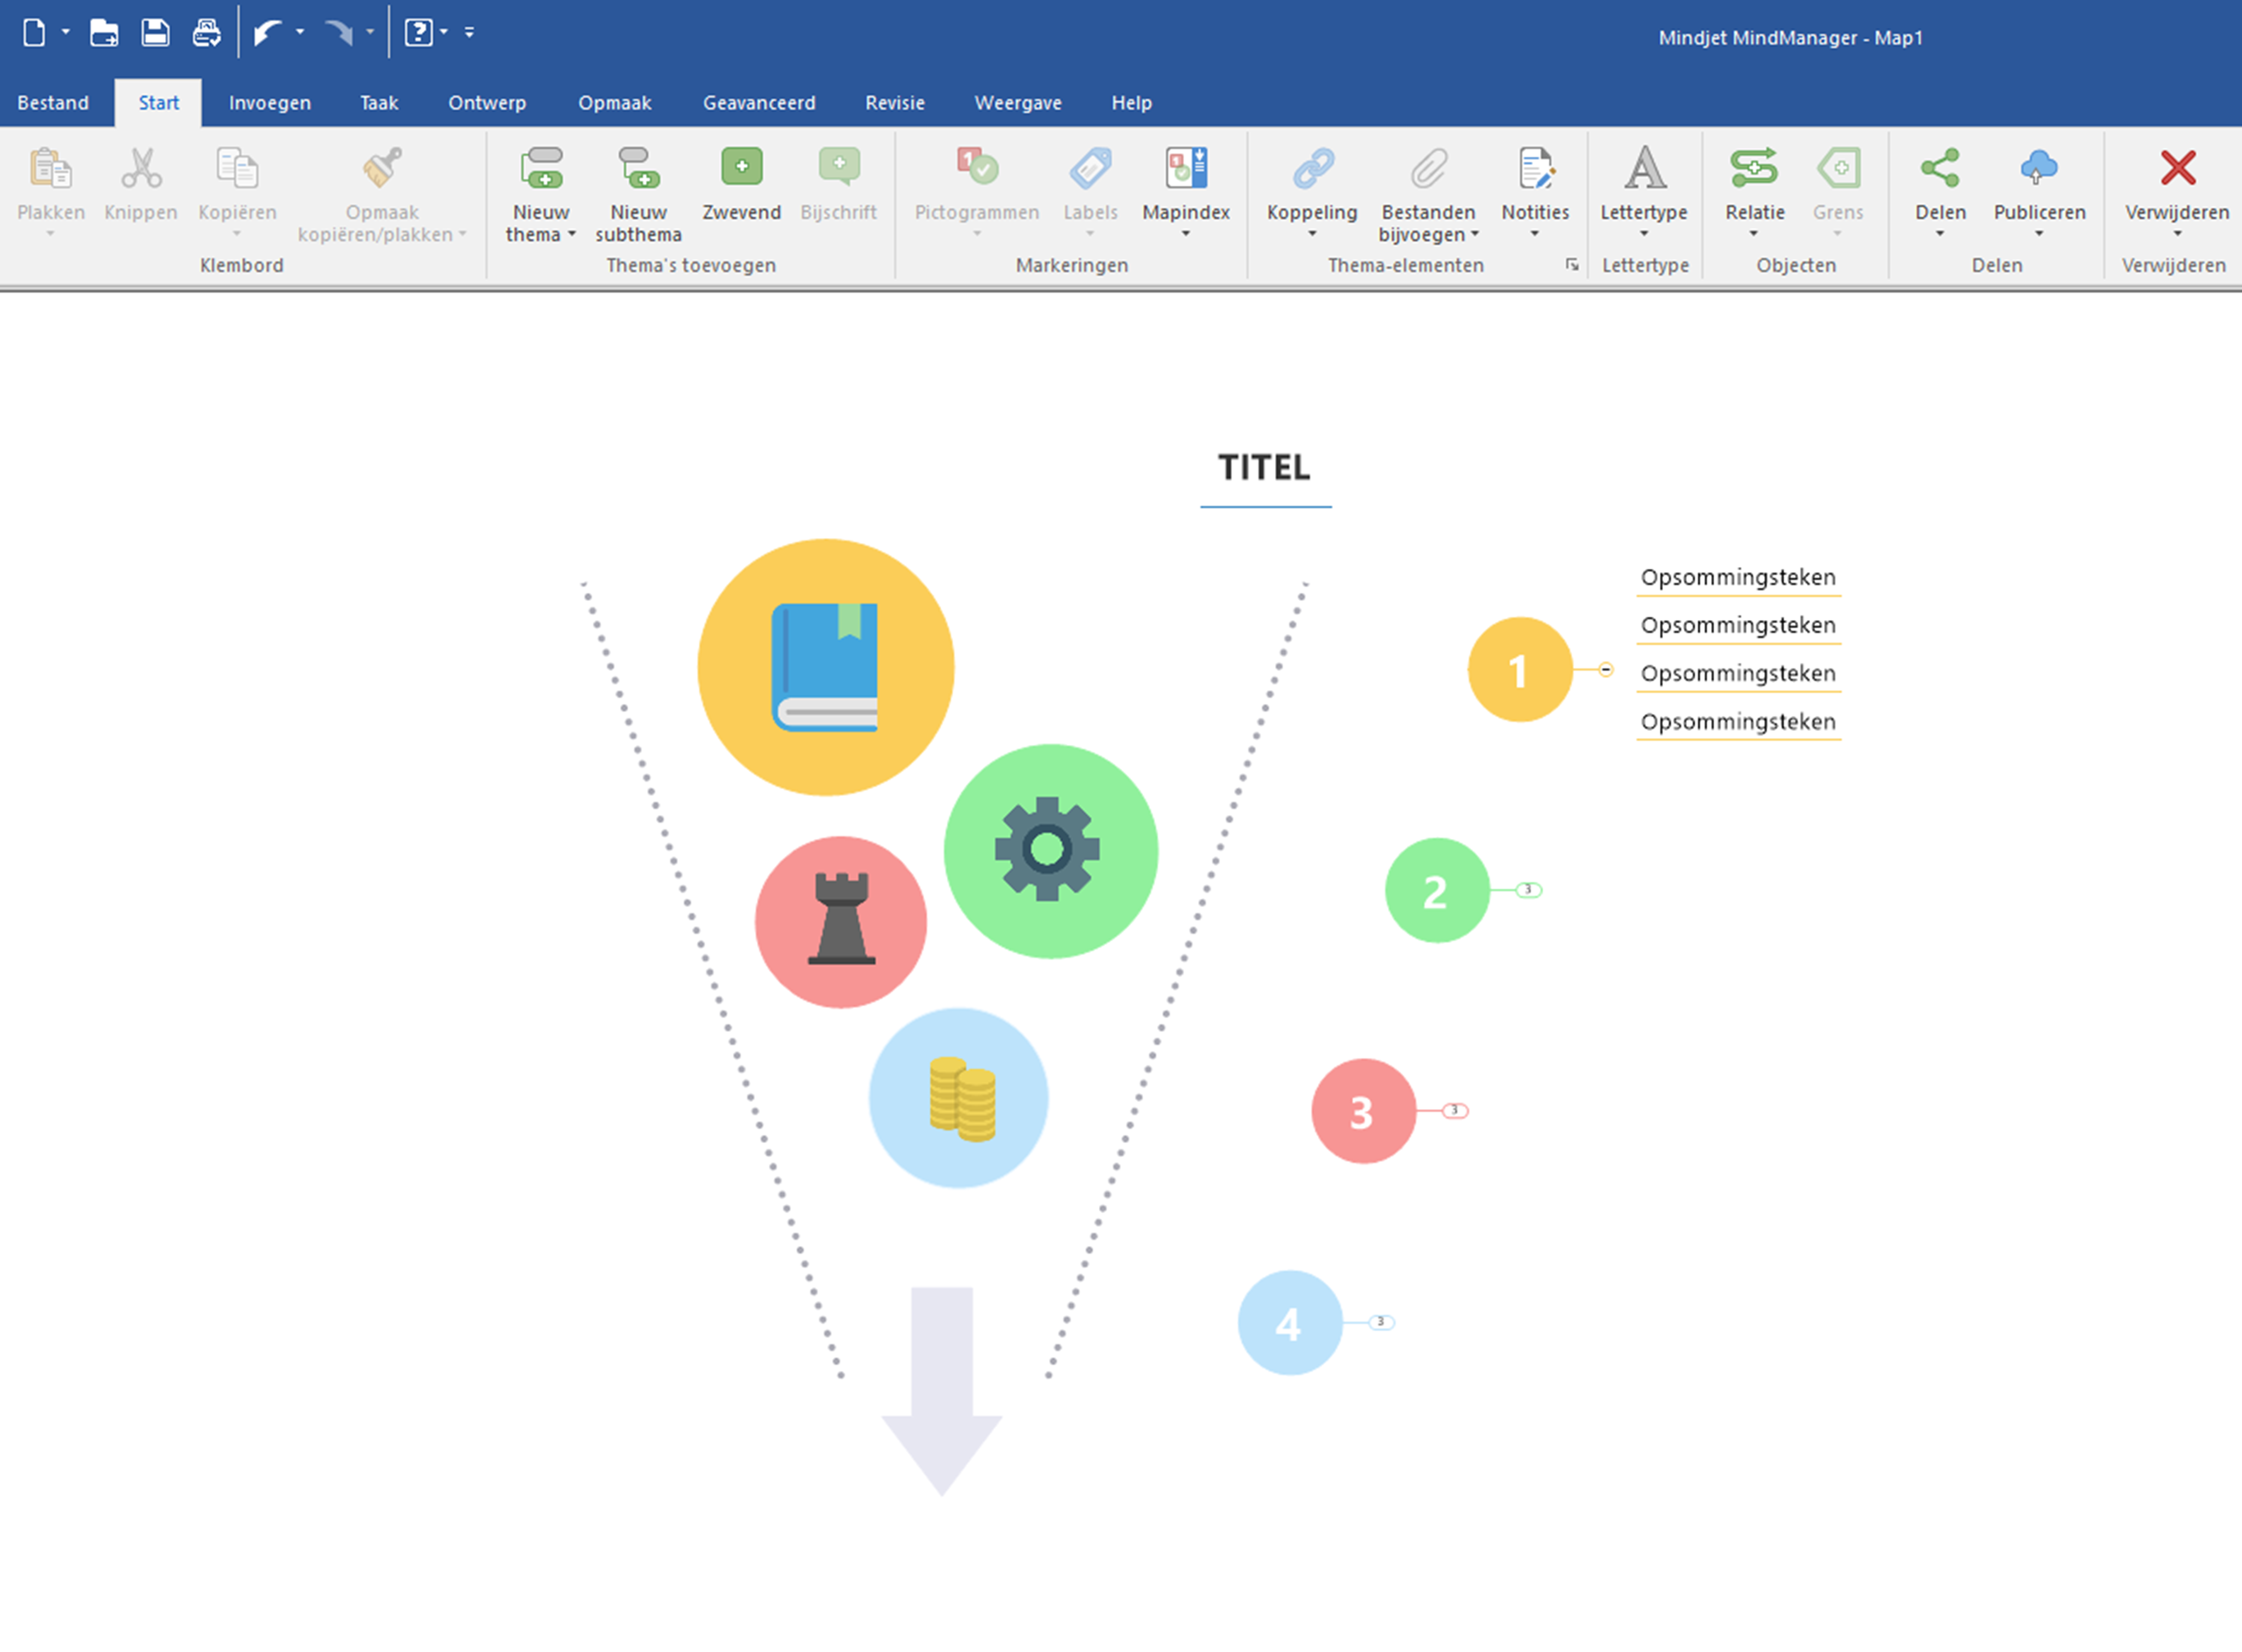 MindManager 2019 for Windows Dutch interface